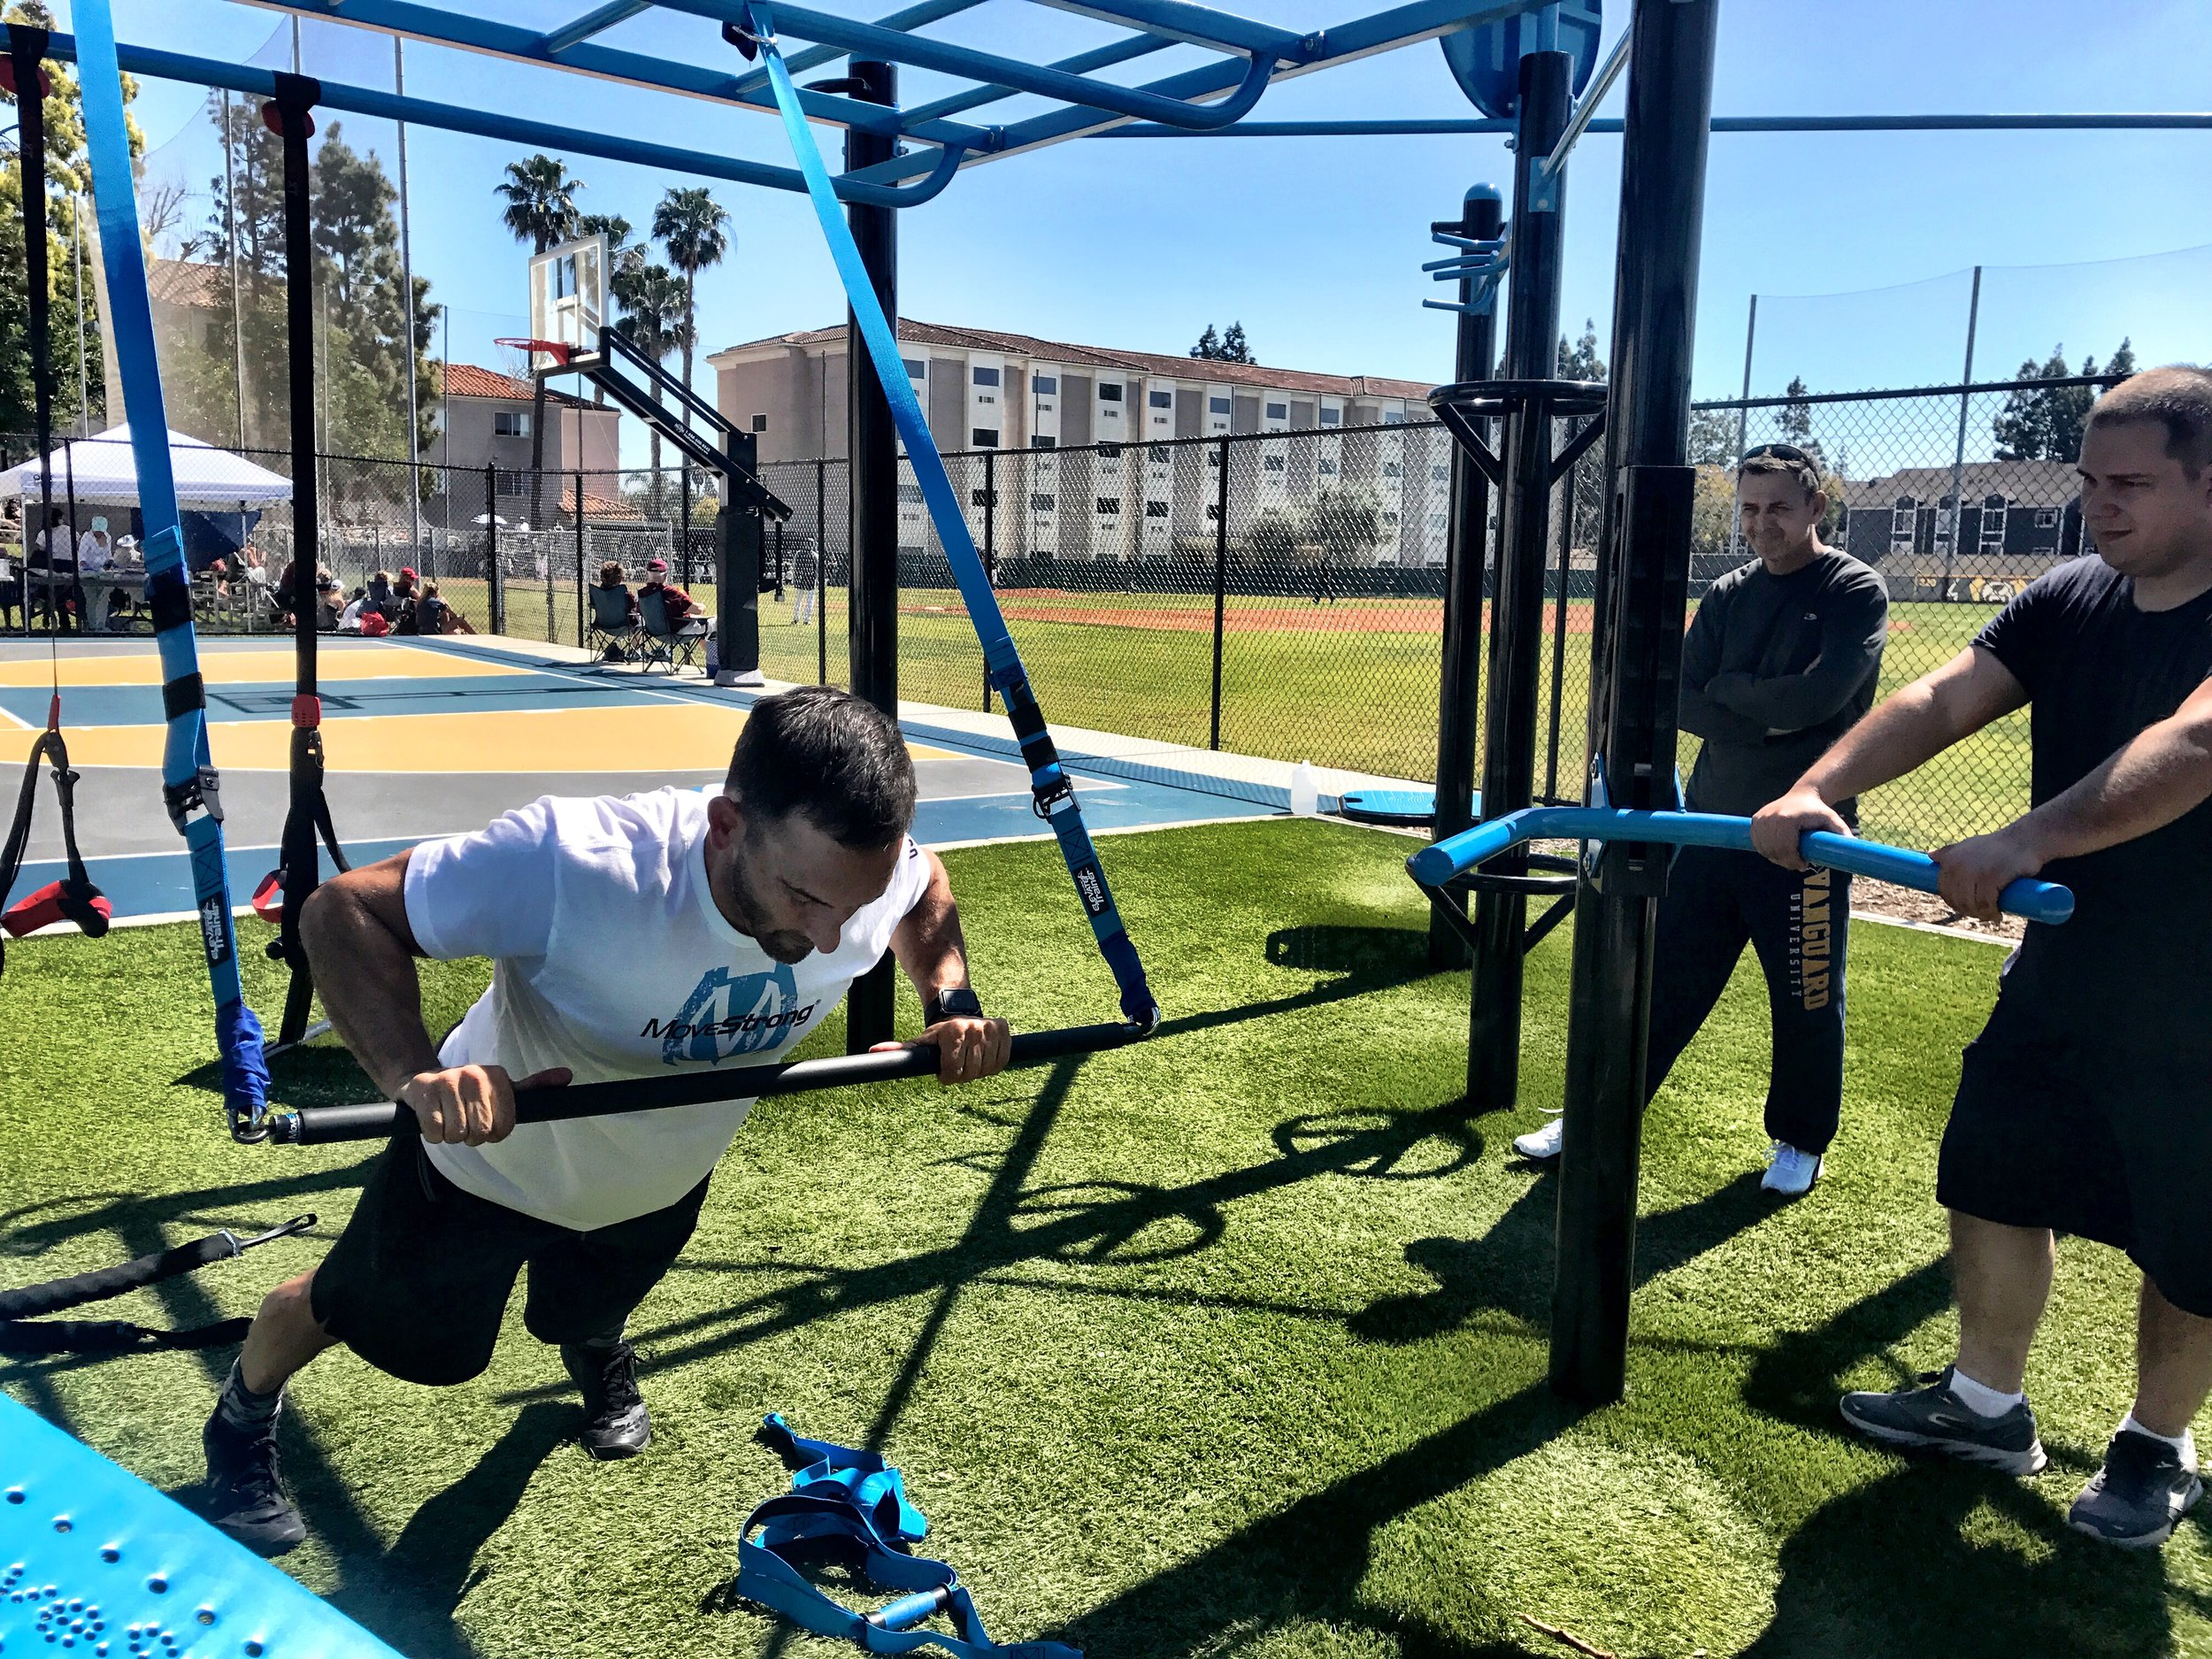 Elevate Trainer and stability bar